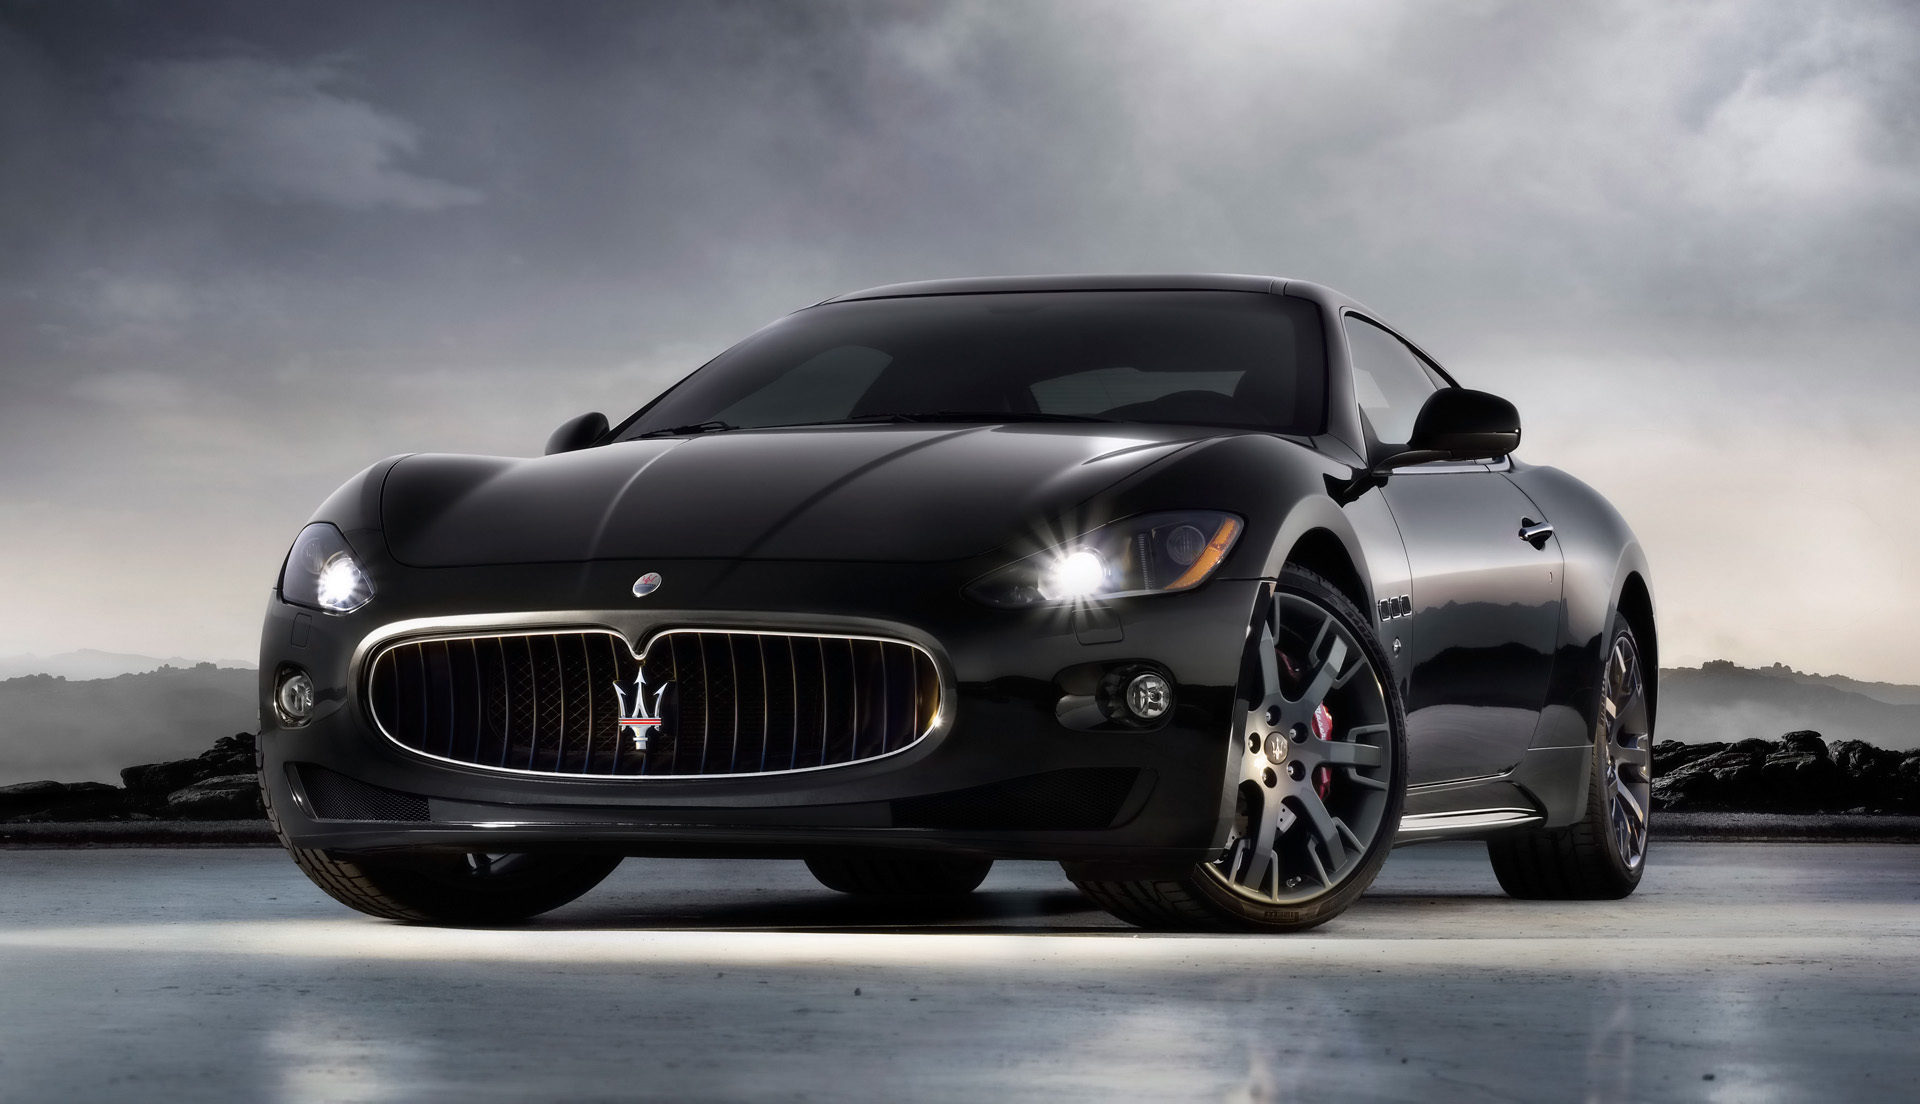 cars black cars HD Wallpaper